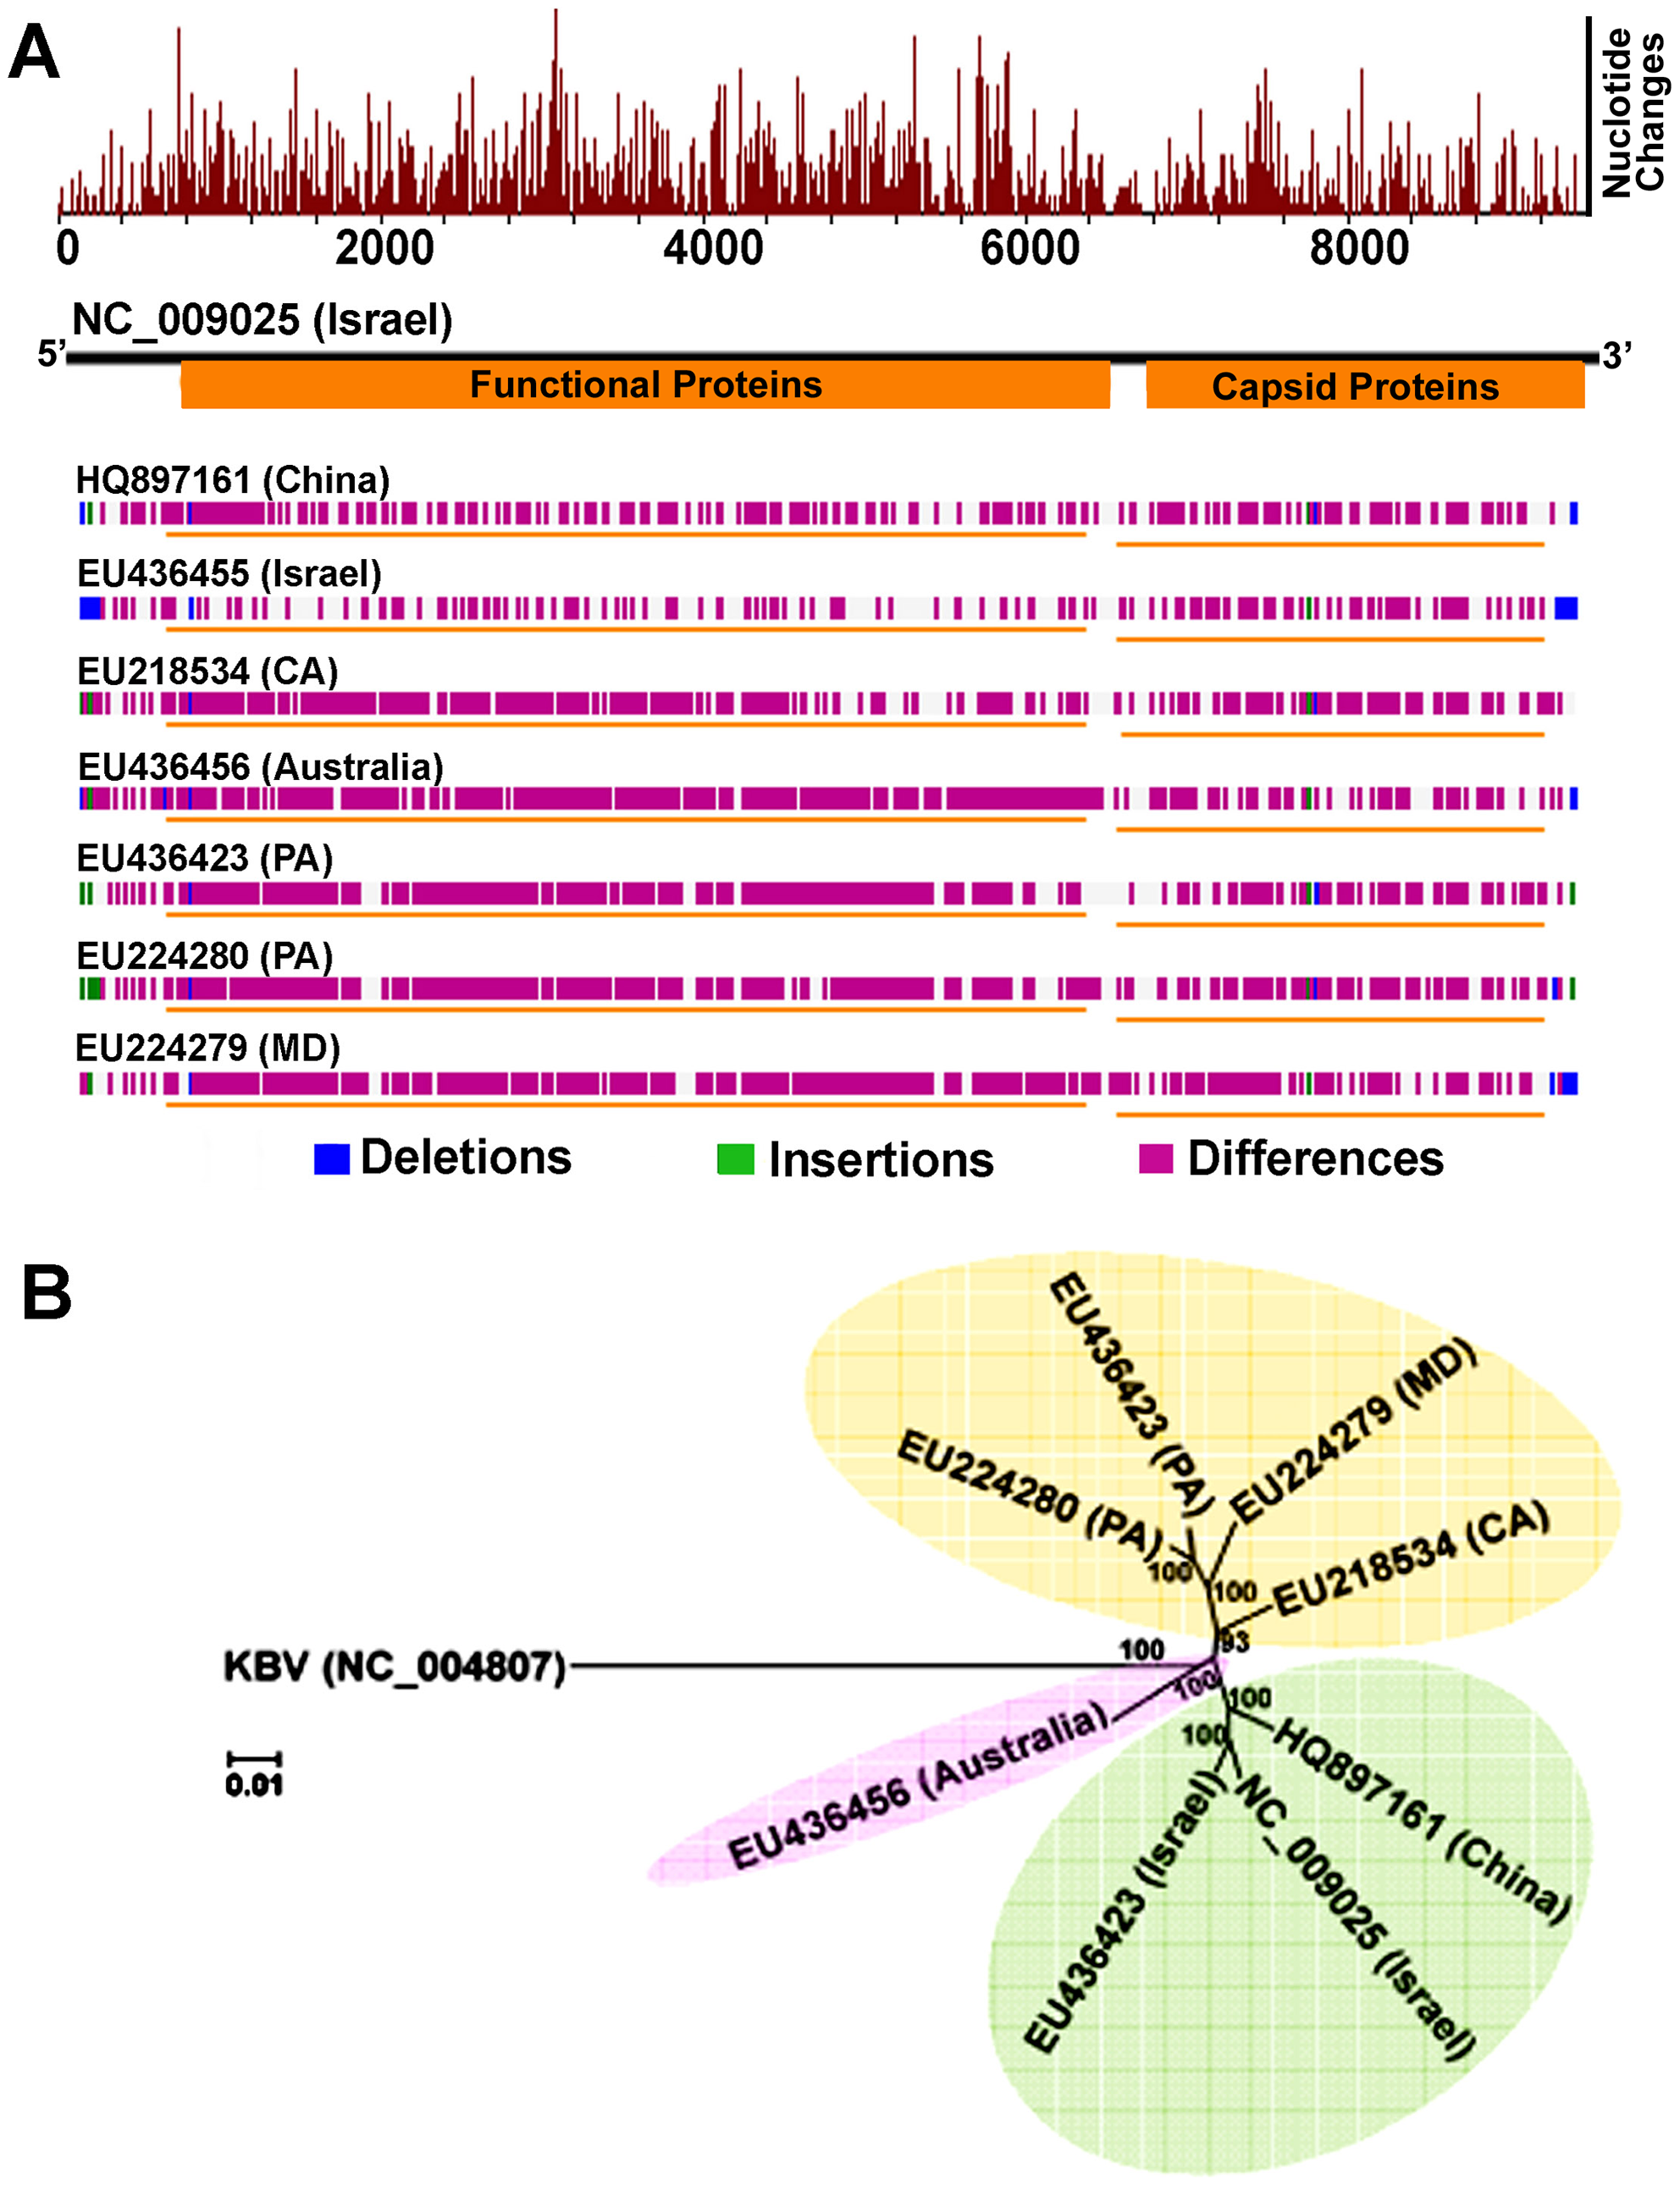 Genome-wide sequence diversity and phylogenetic relationship of IAPV isolates.